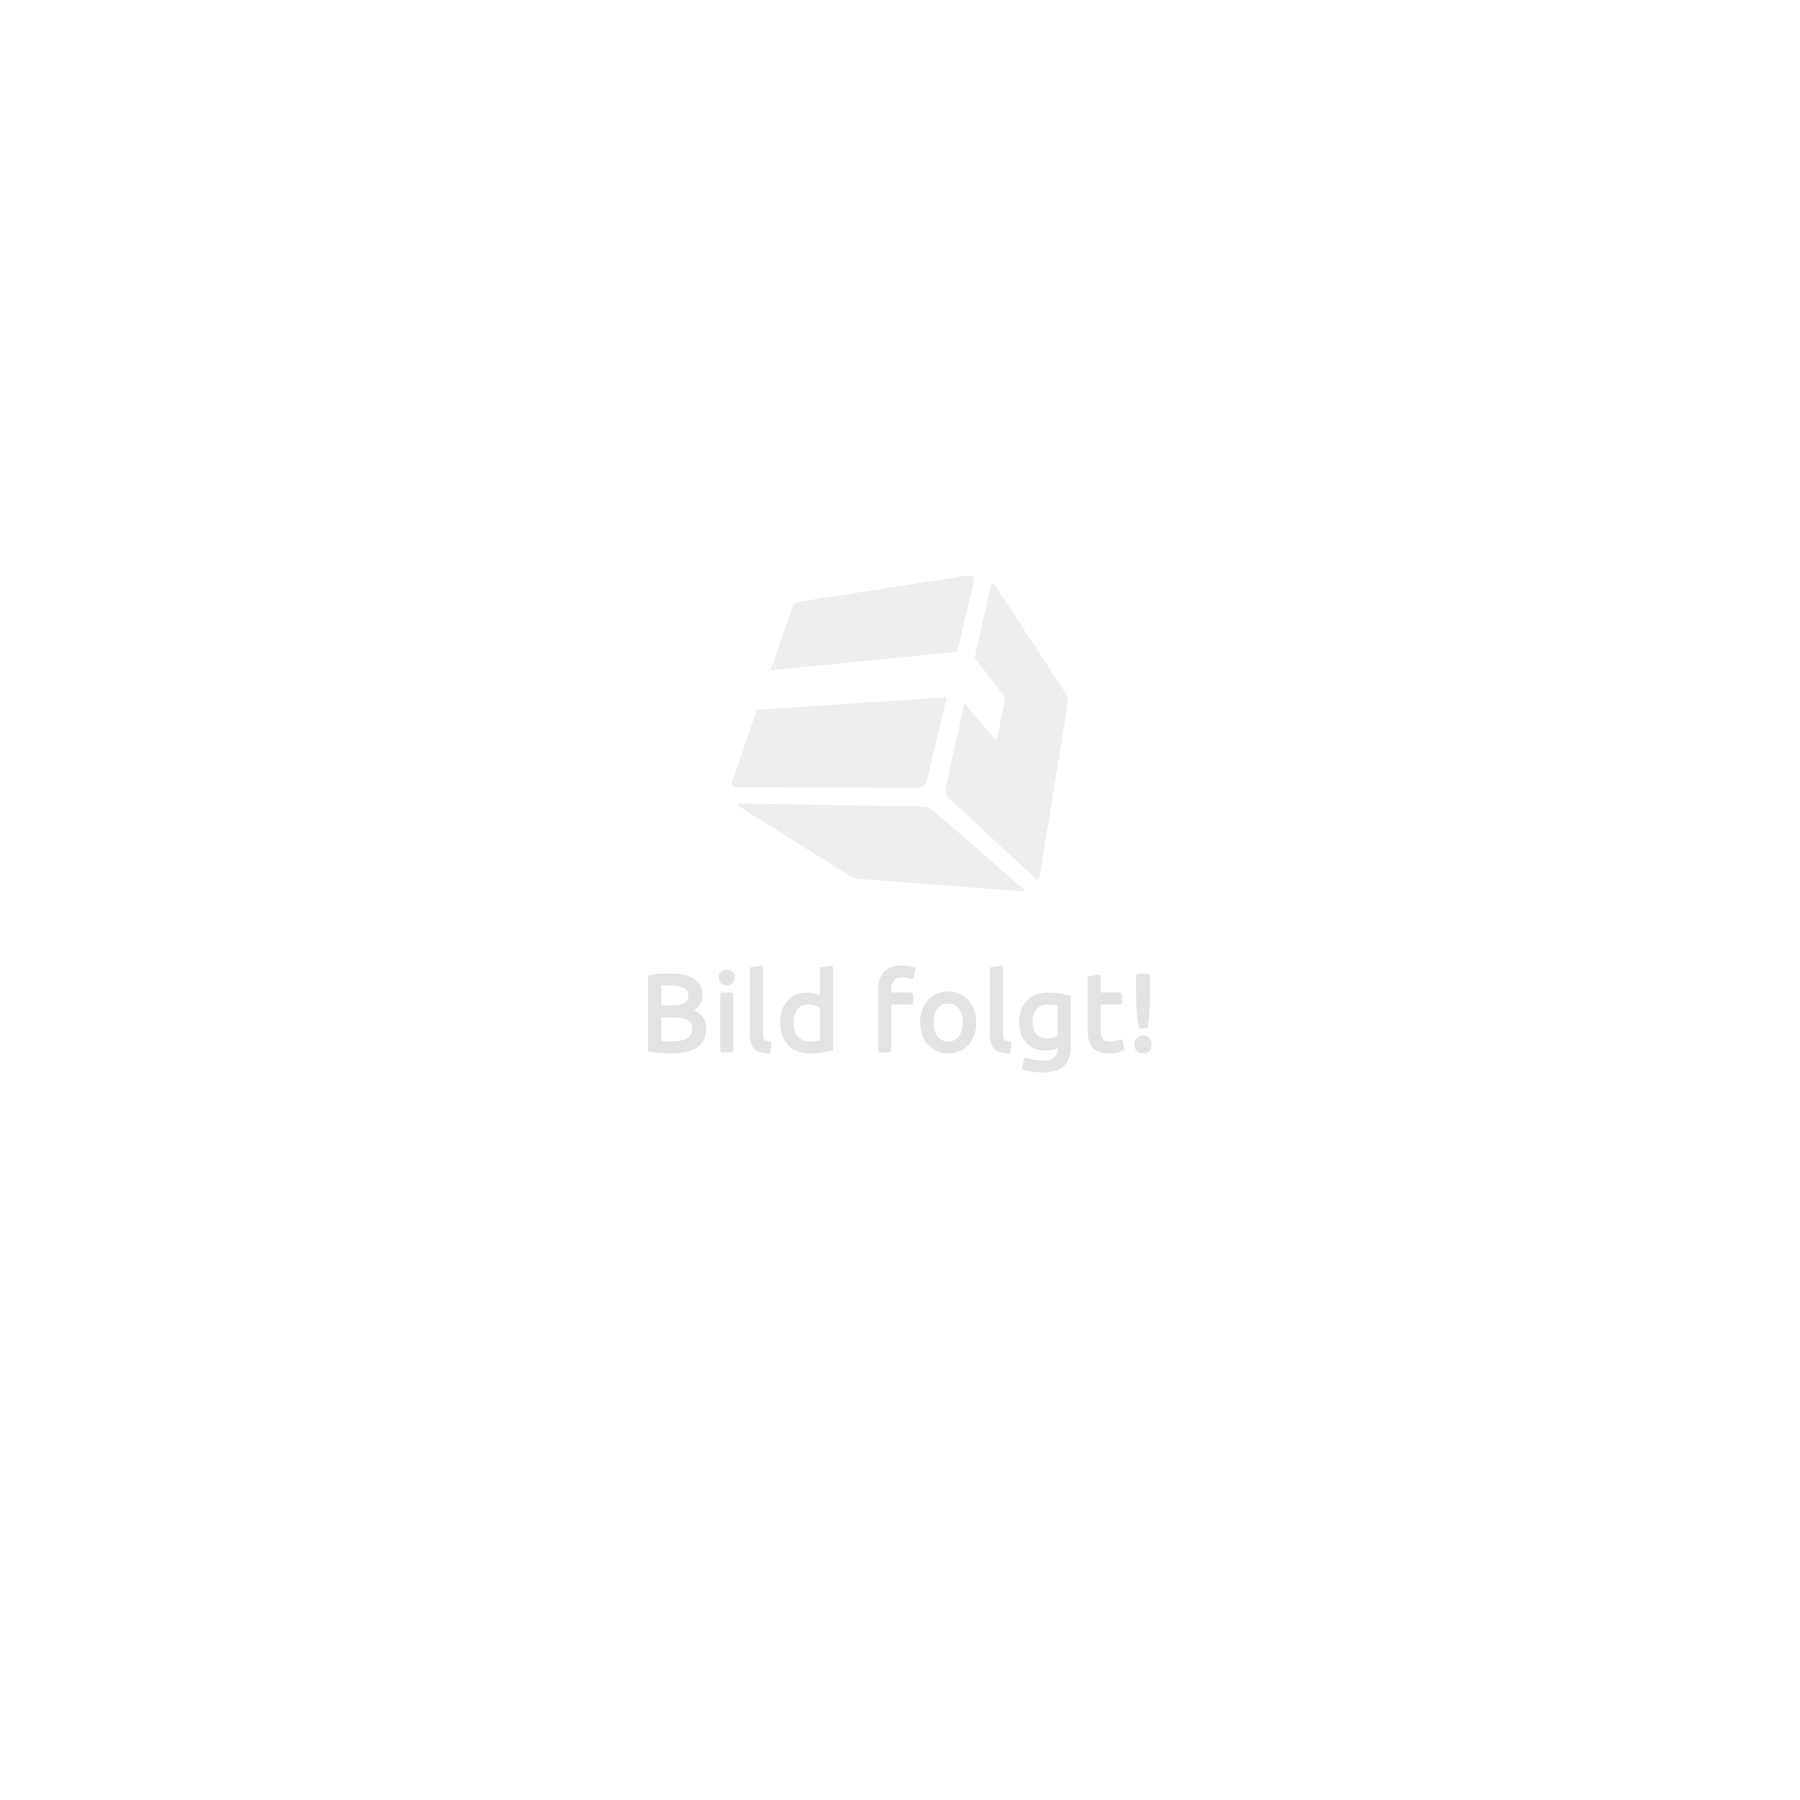 Table de lit pour ordinateur Portable, 55 x 35 x 26 cm